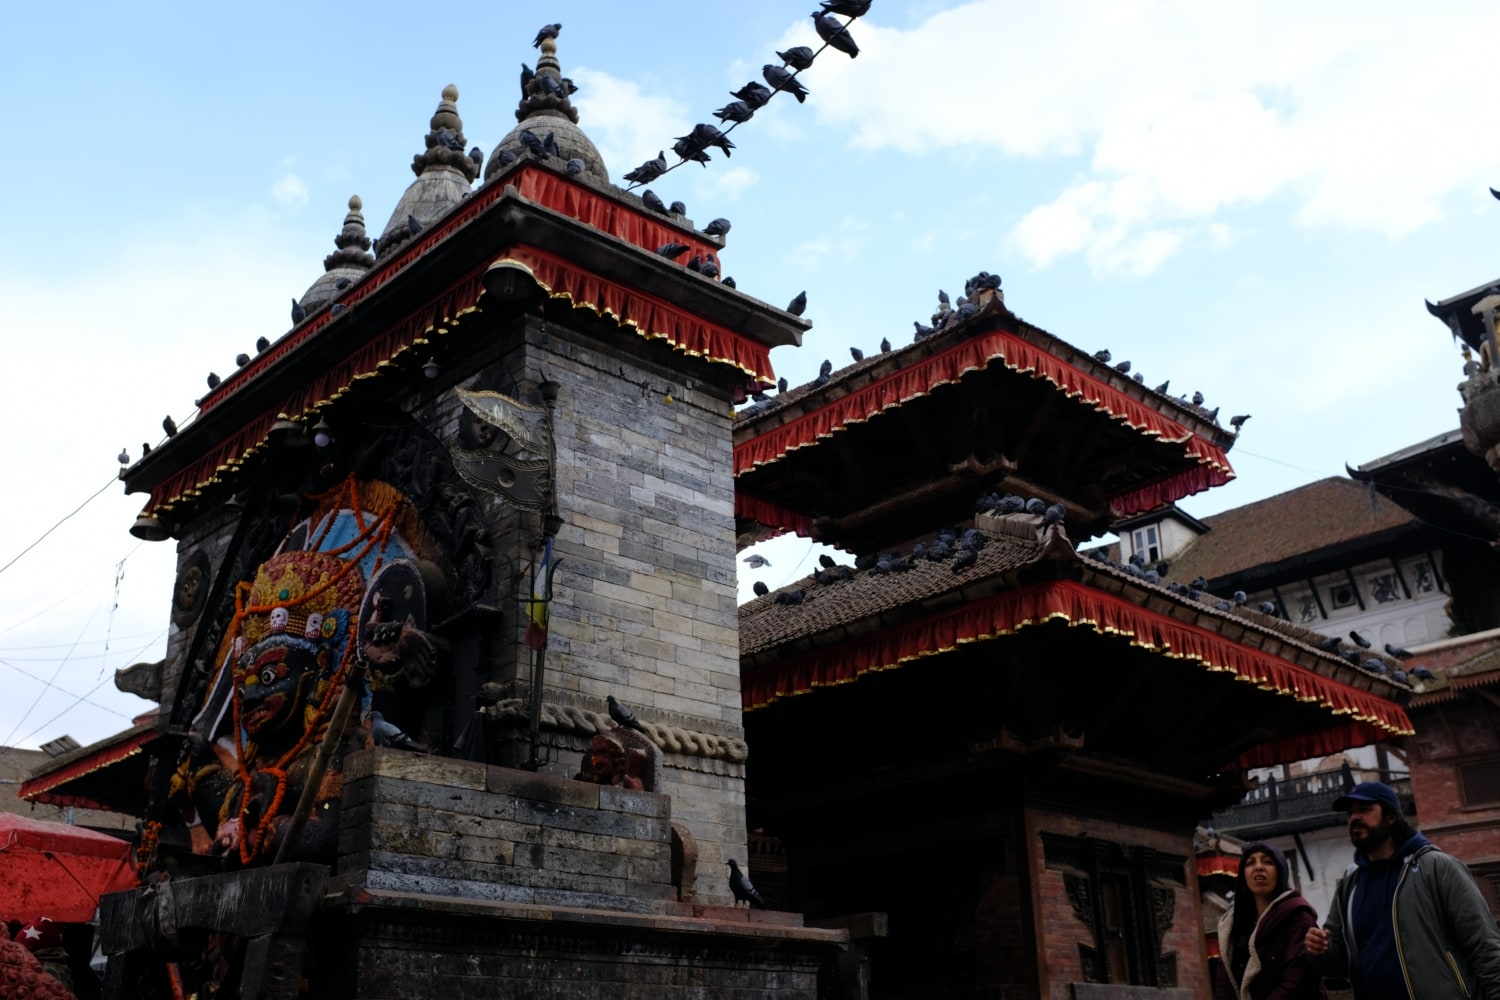 Kathmandu Durbar Square - People Passing by a Temple